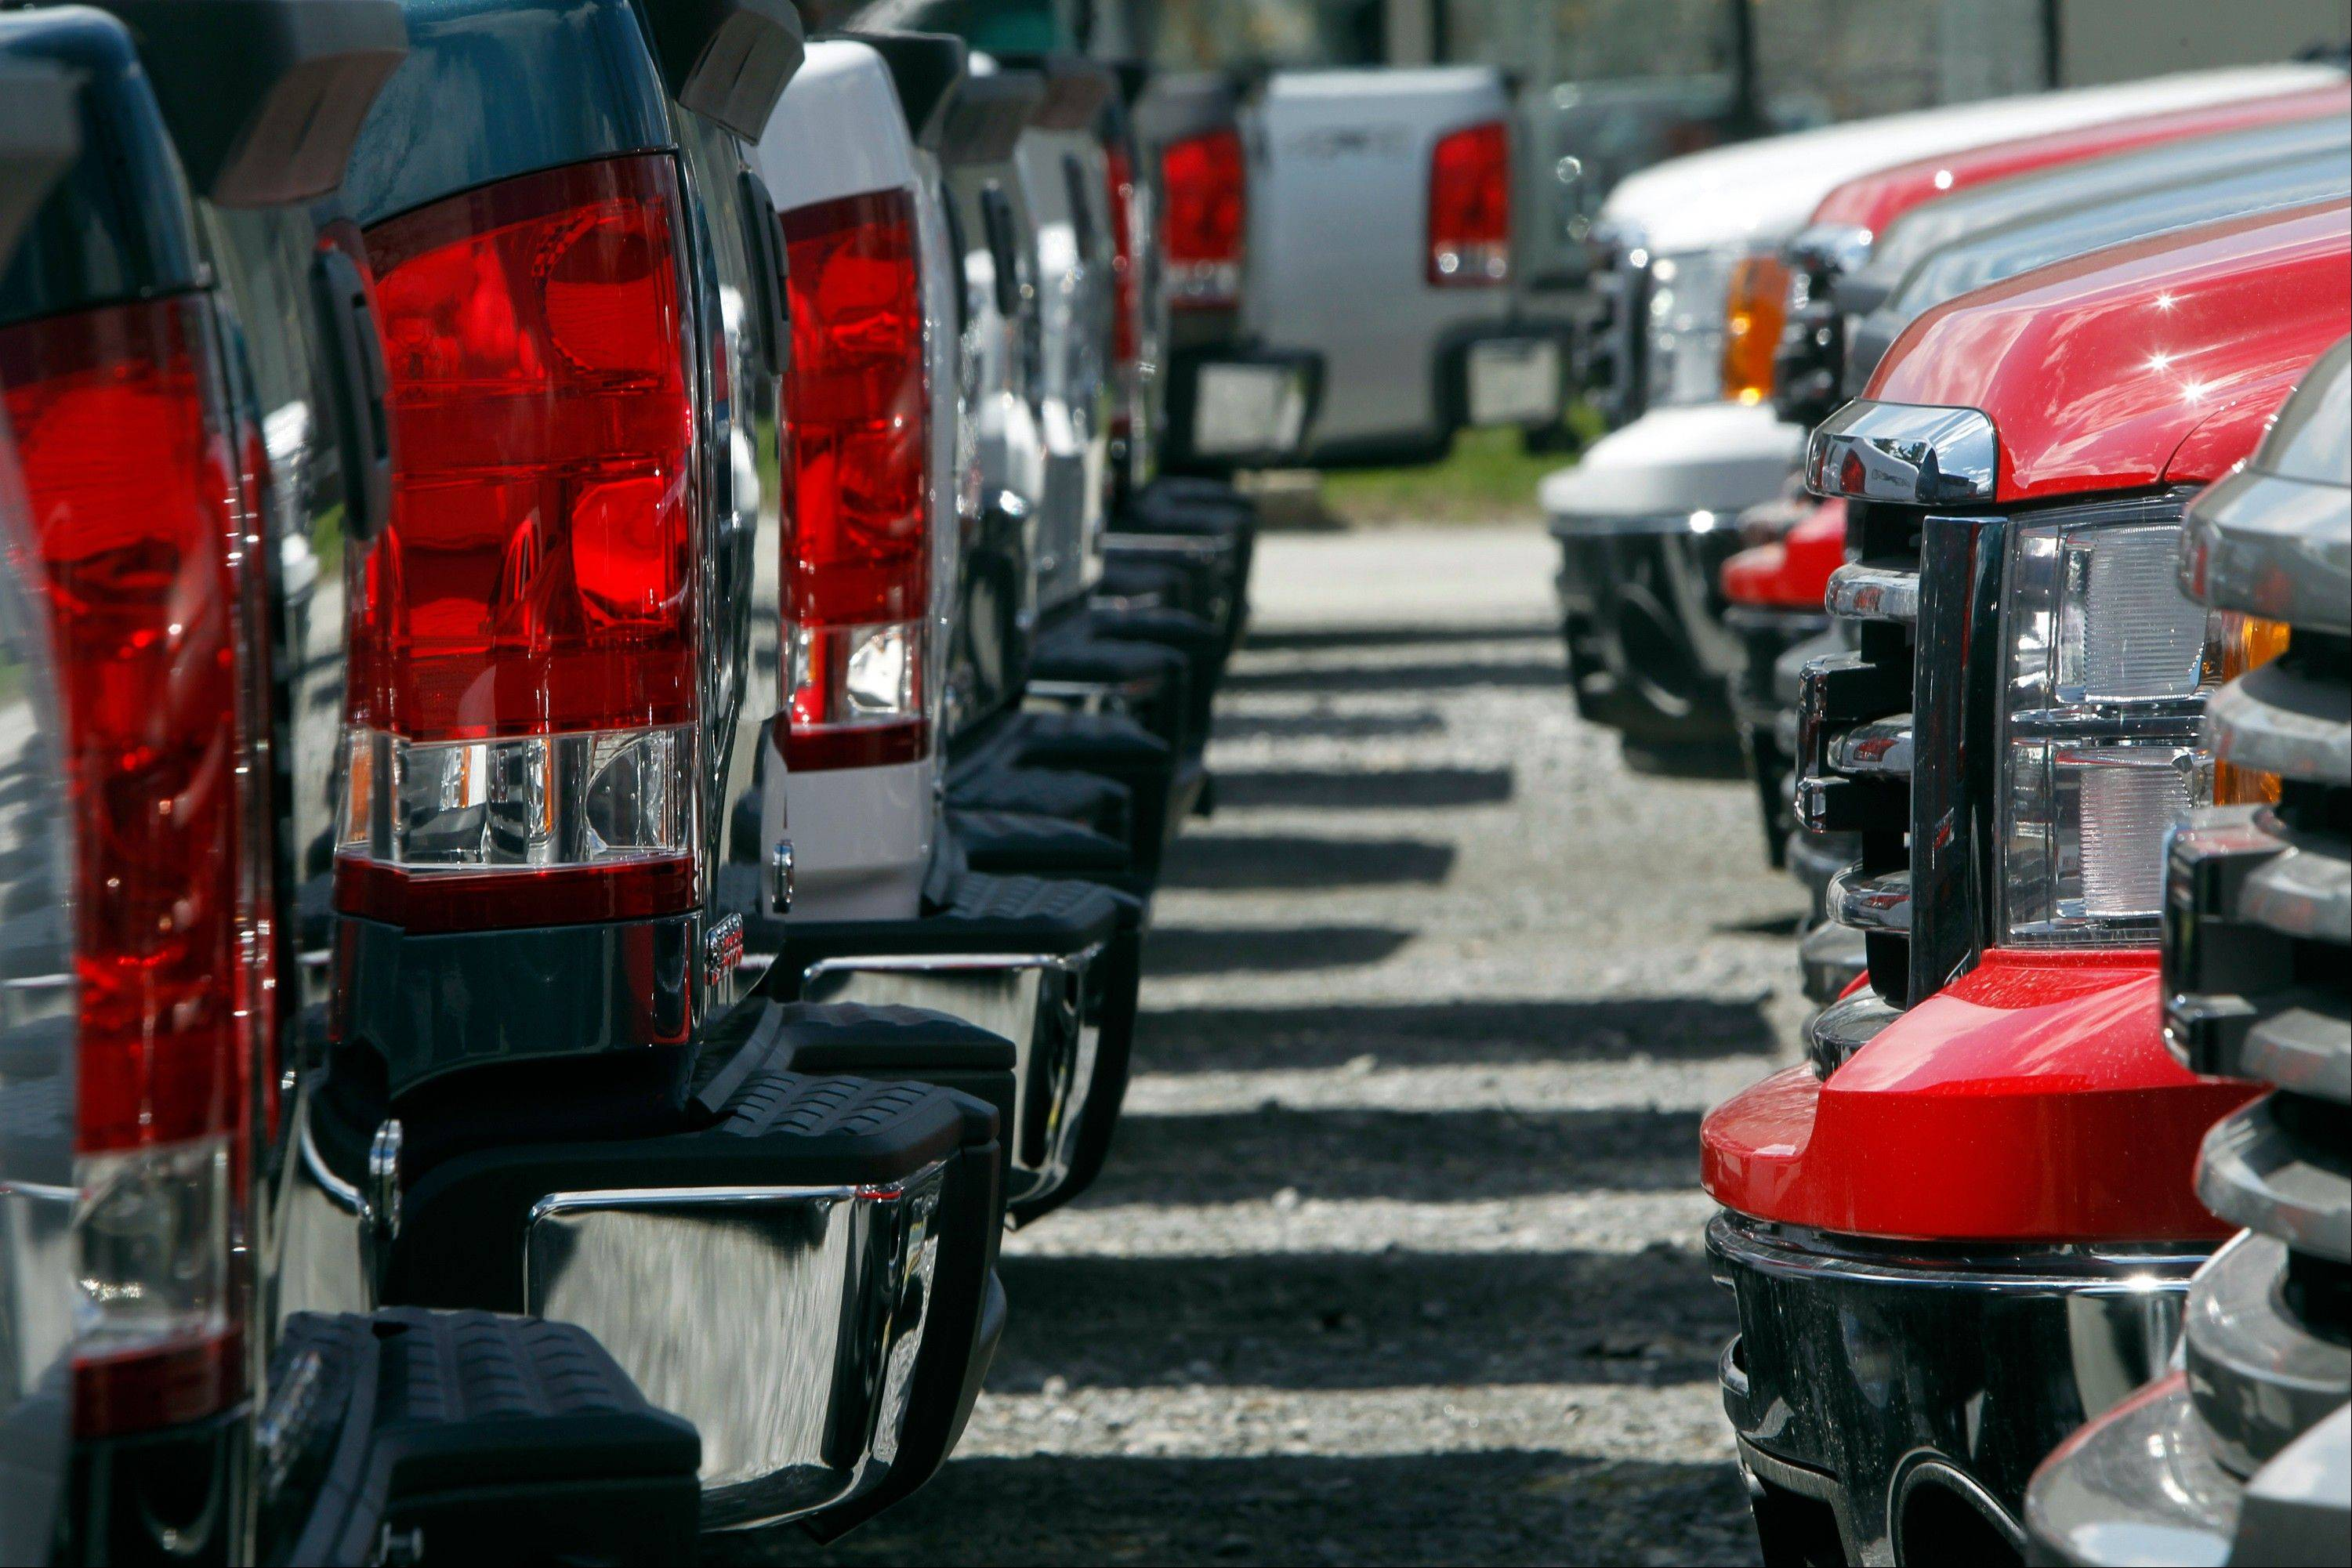 Ford, GM, Chrysler and Nissan all reported double-digit U.S. sales increases last month, signaling the best April for car and truck sales in six years.